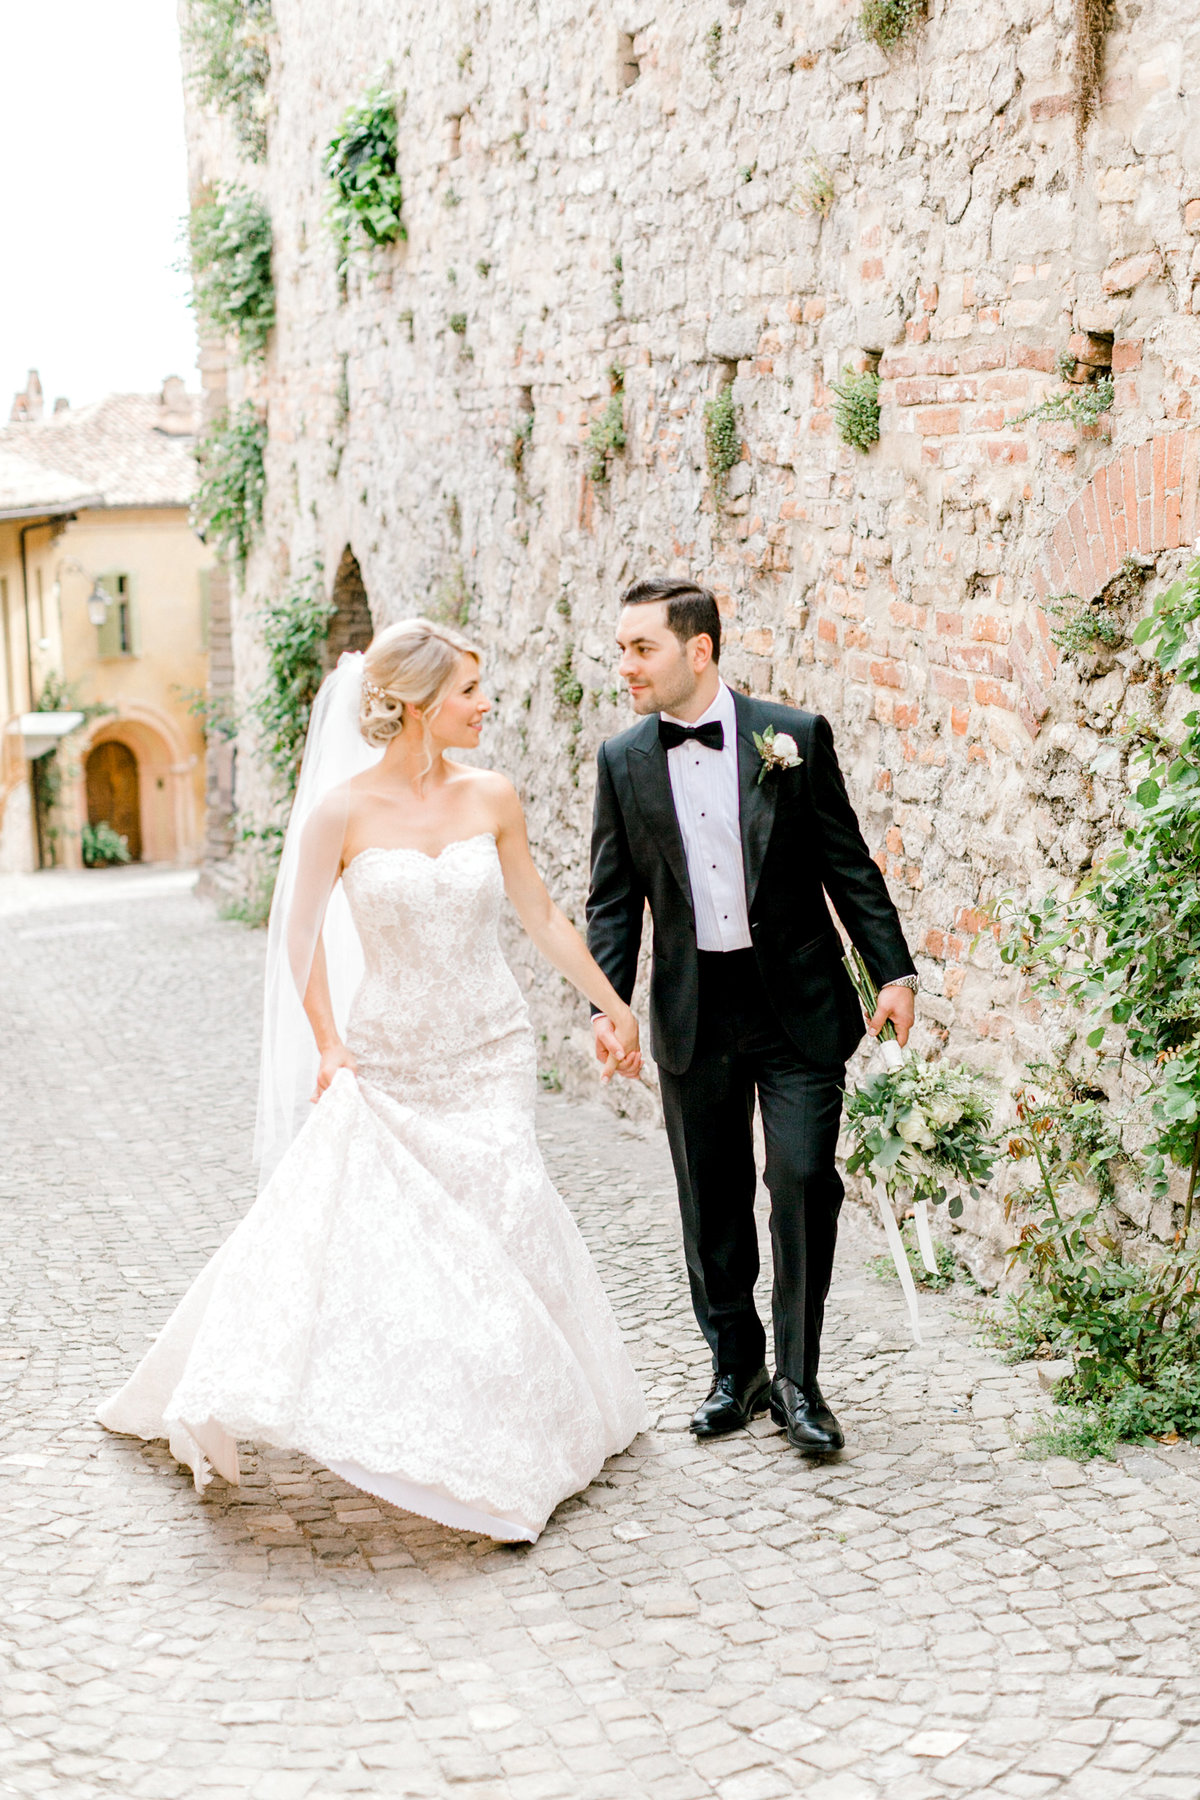 Destination-Vineyard-Italian-Wedding-New-York-Photographer-Jessica-Haley-Photo-23